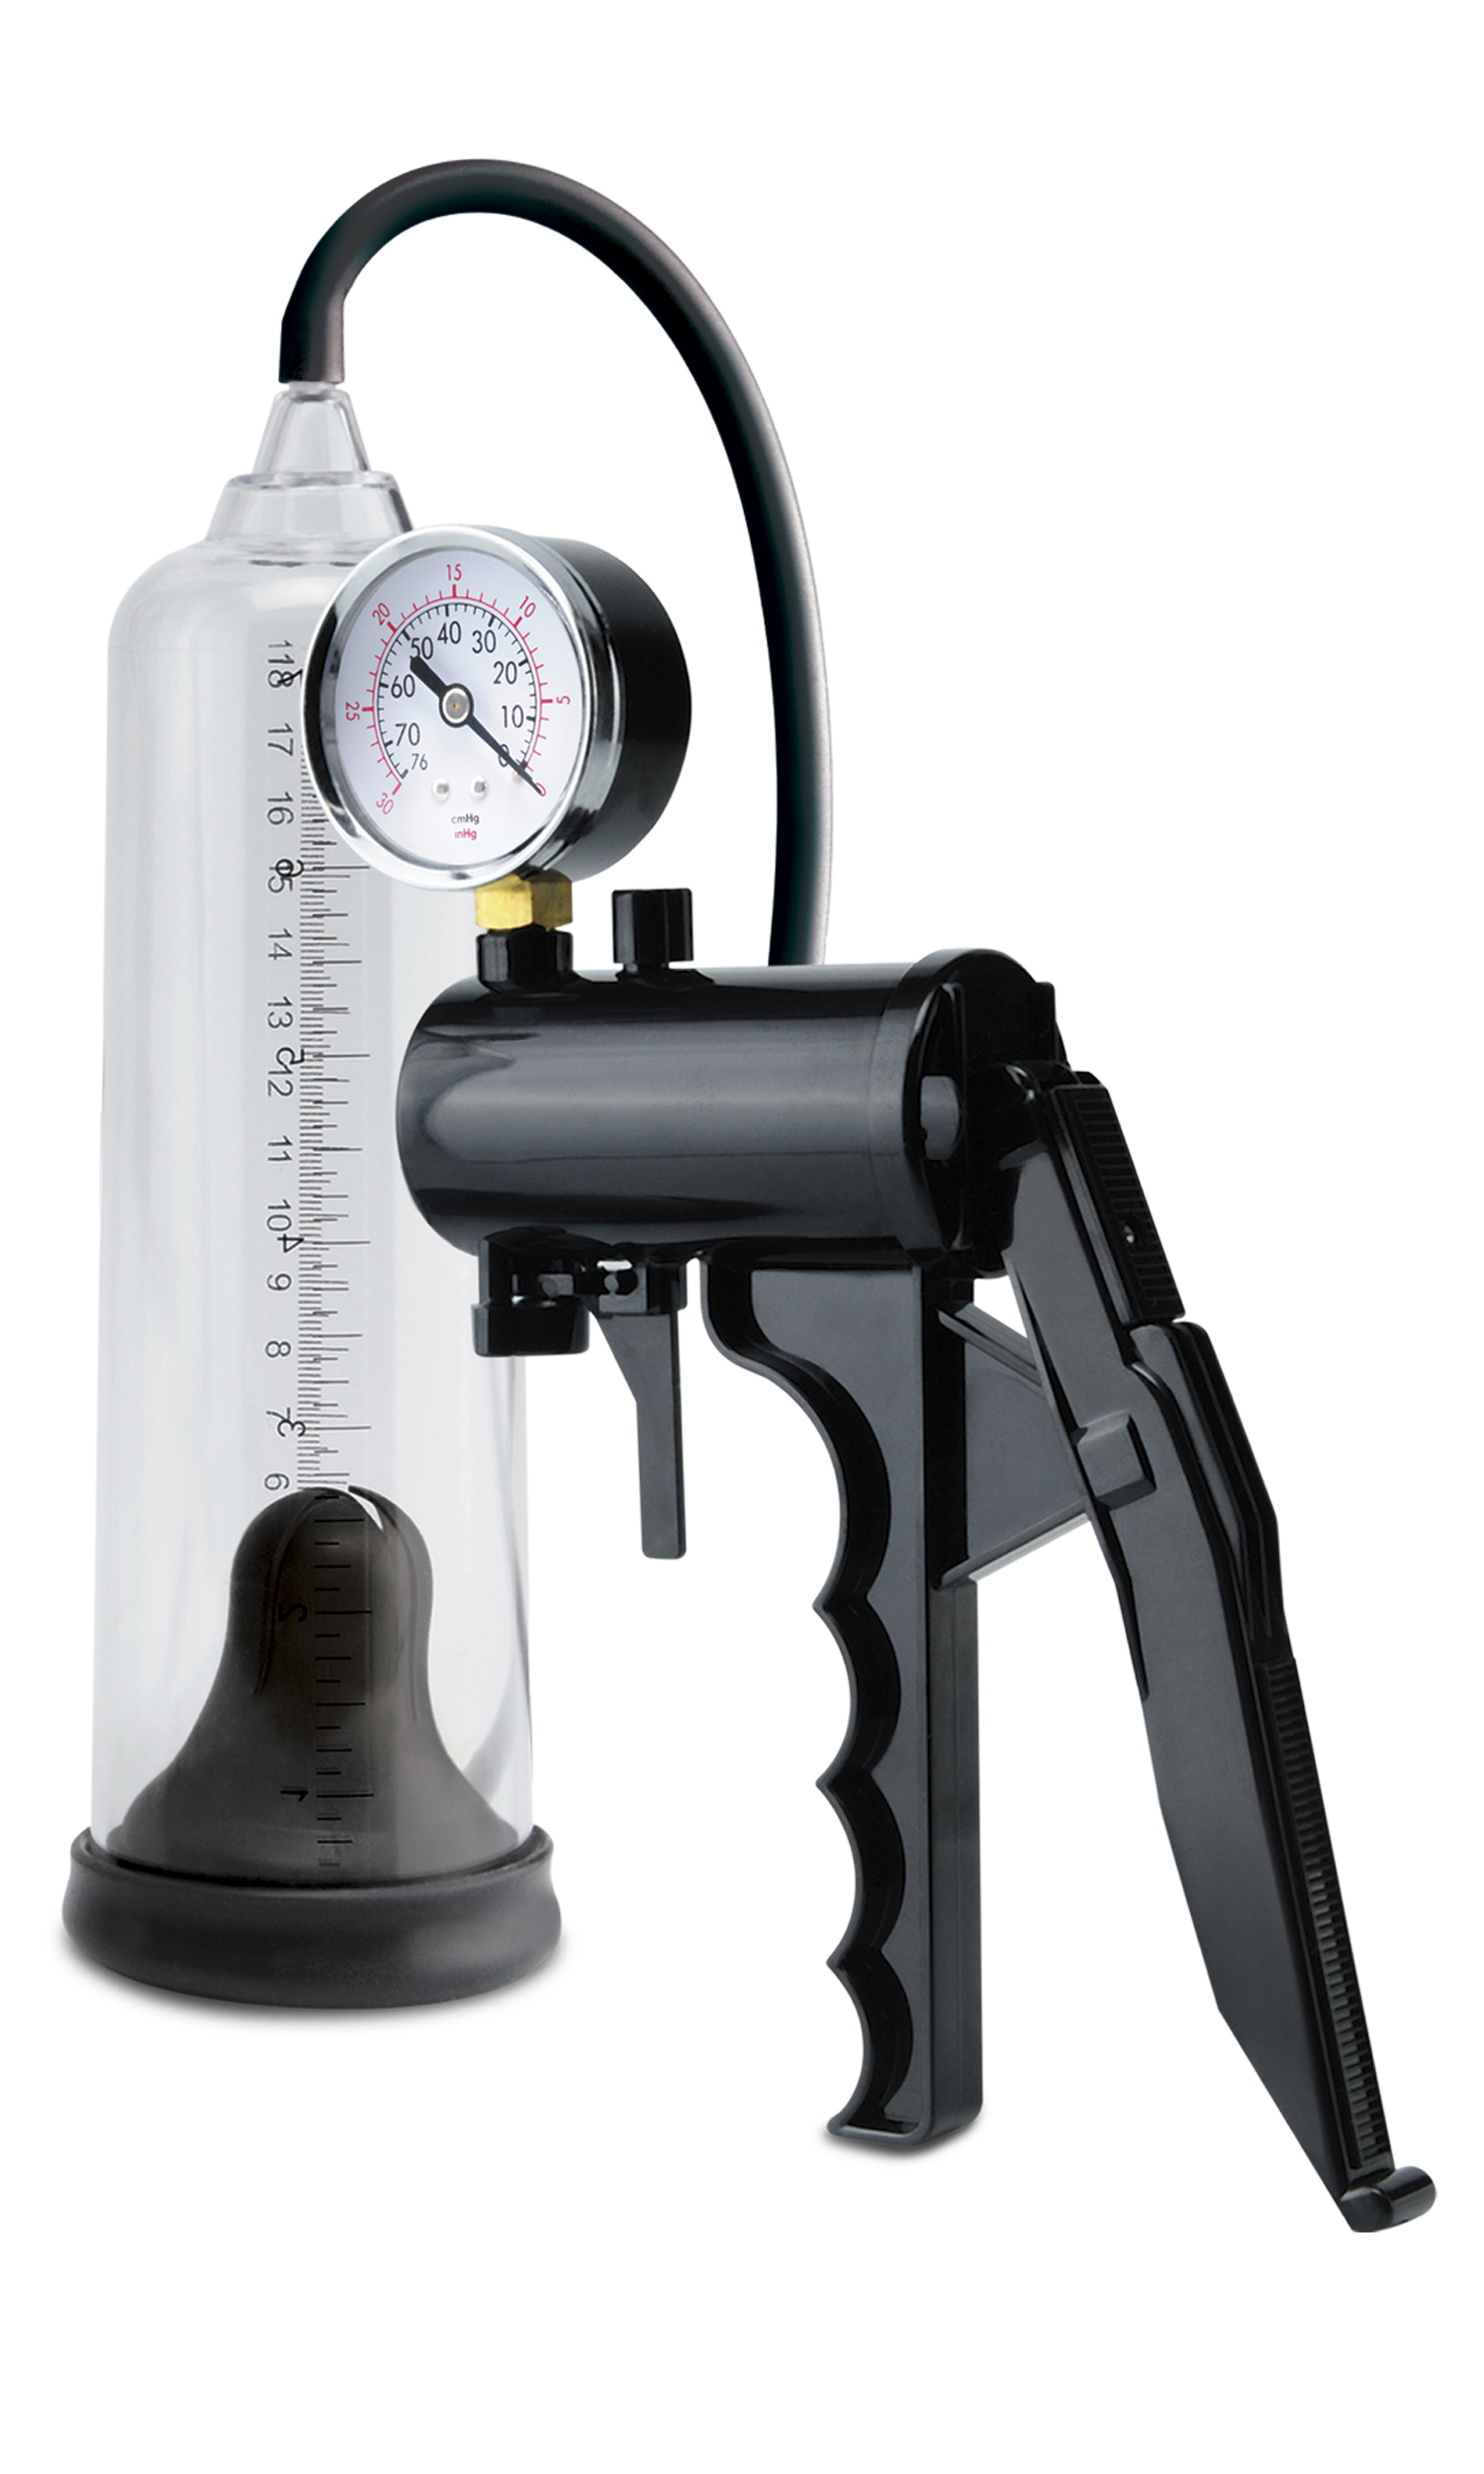 PUMP WORX MAX PRECISION POWER PUMP  - PD327023